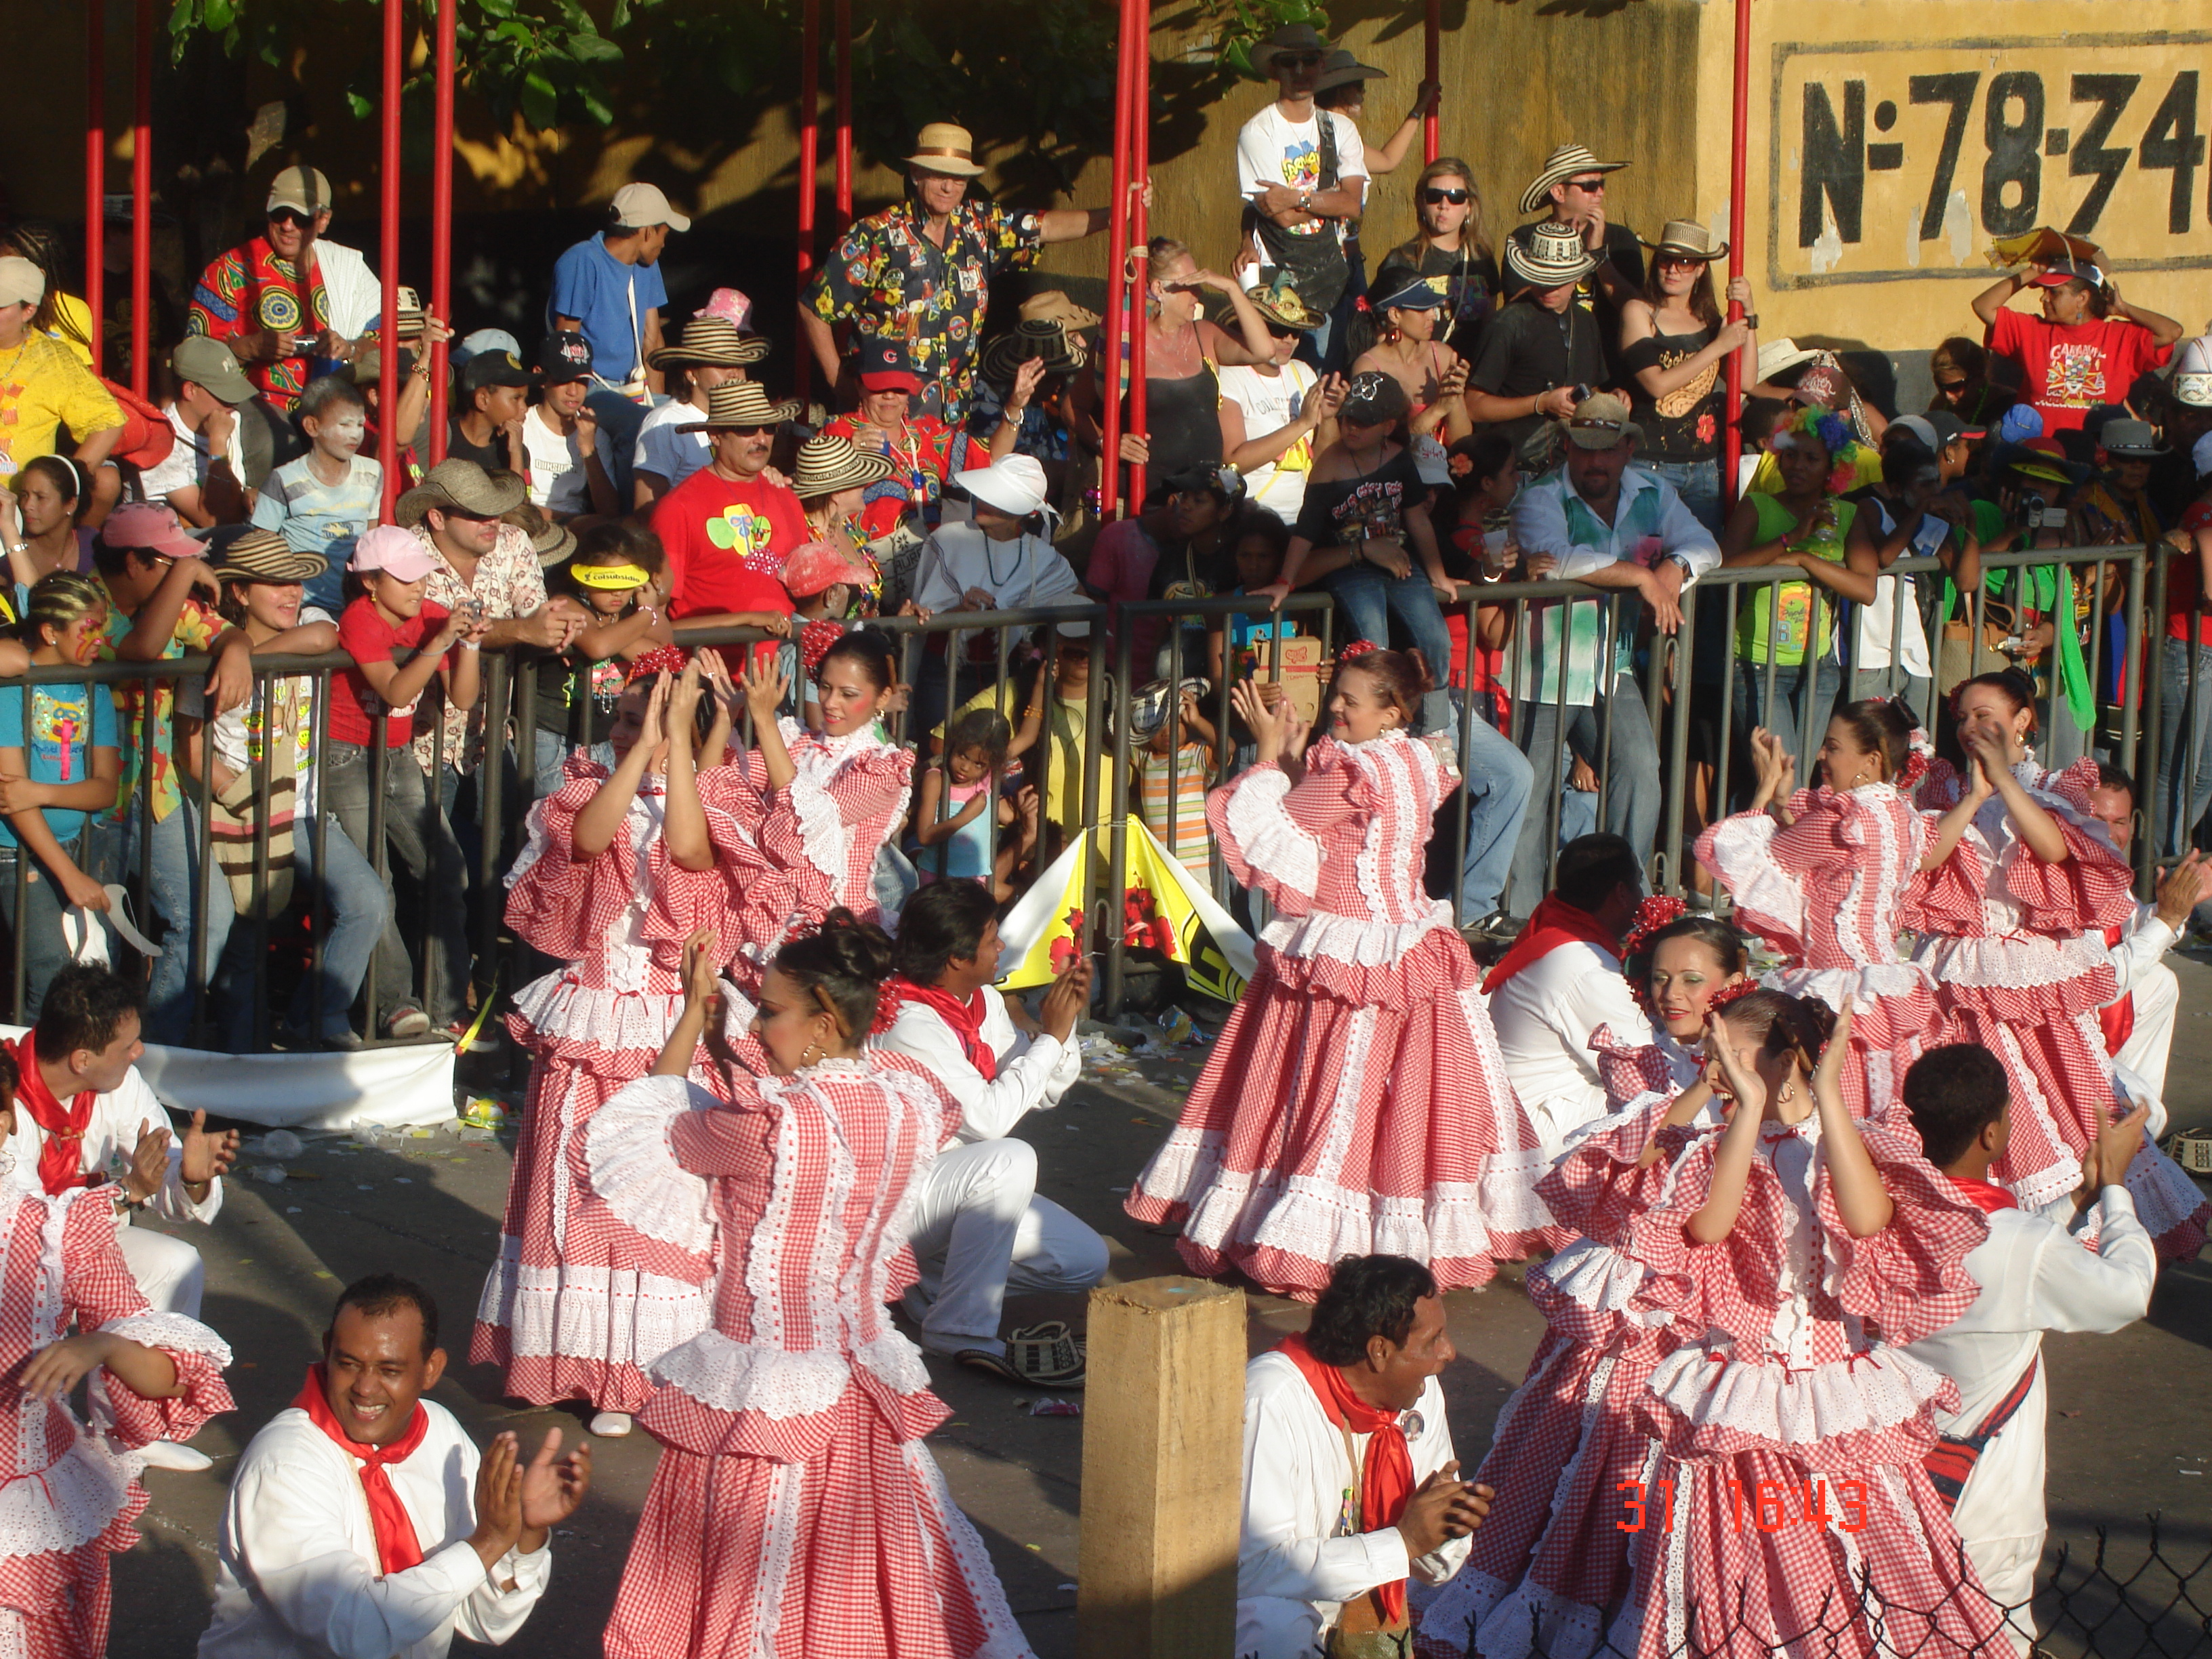 Depiction of Cultura de Barranquilla